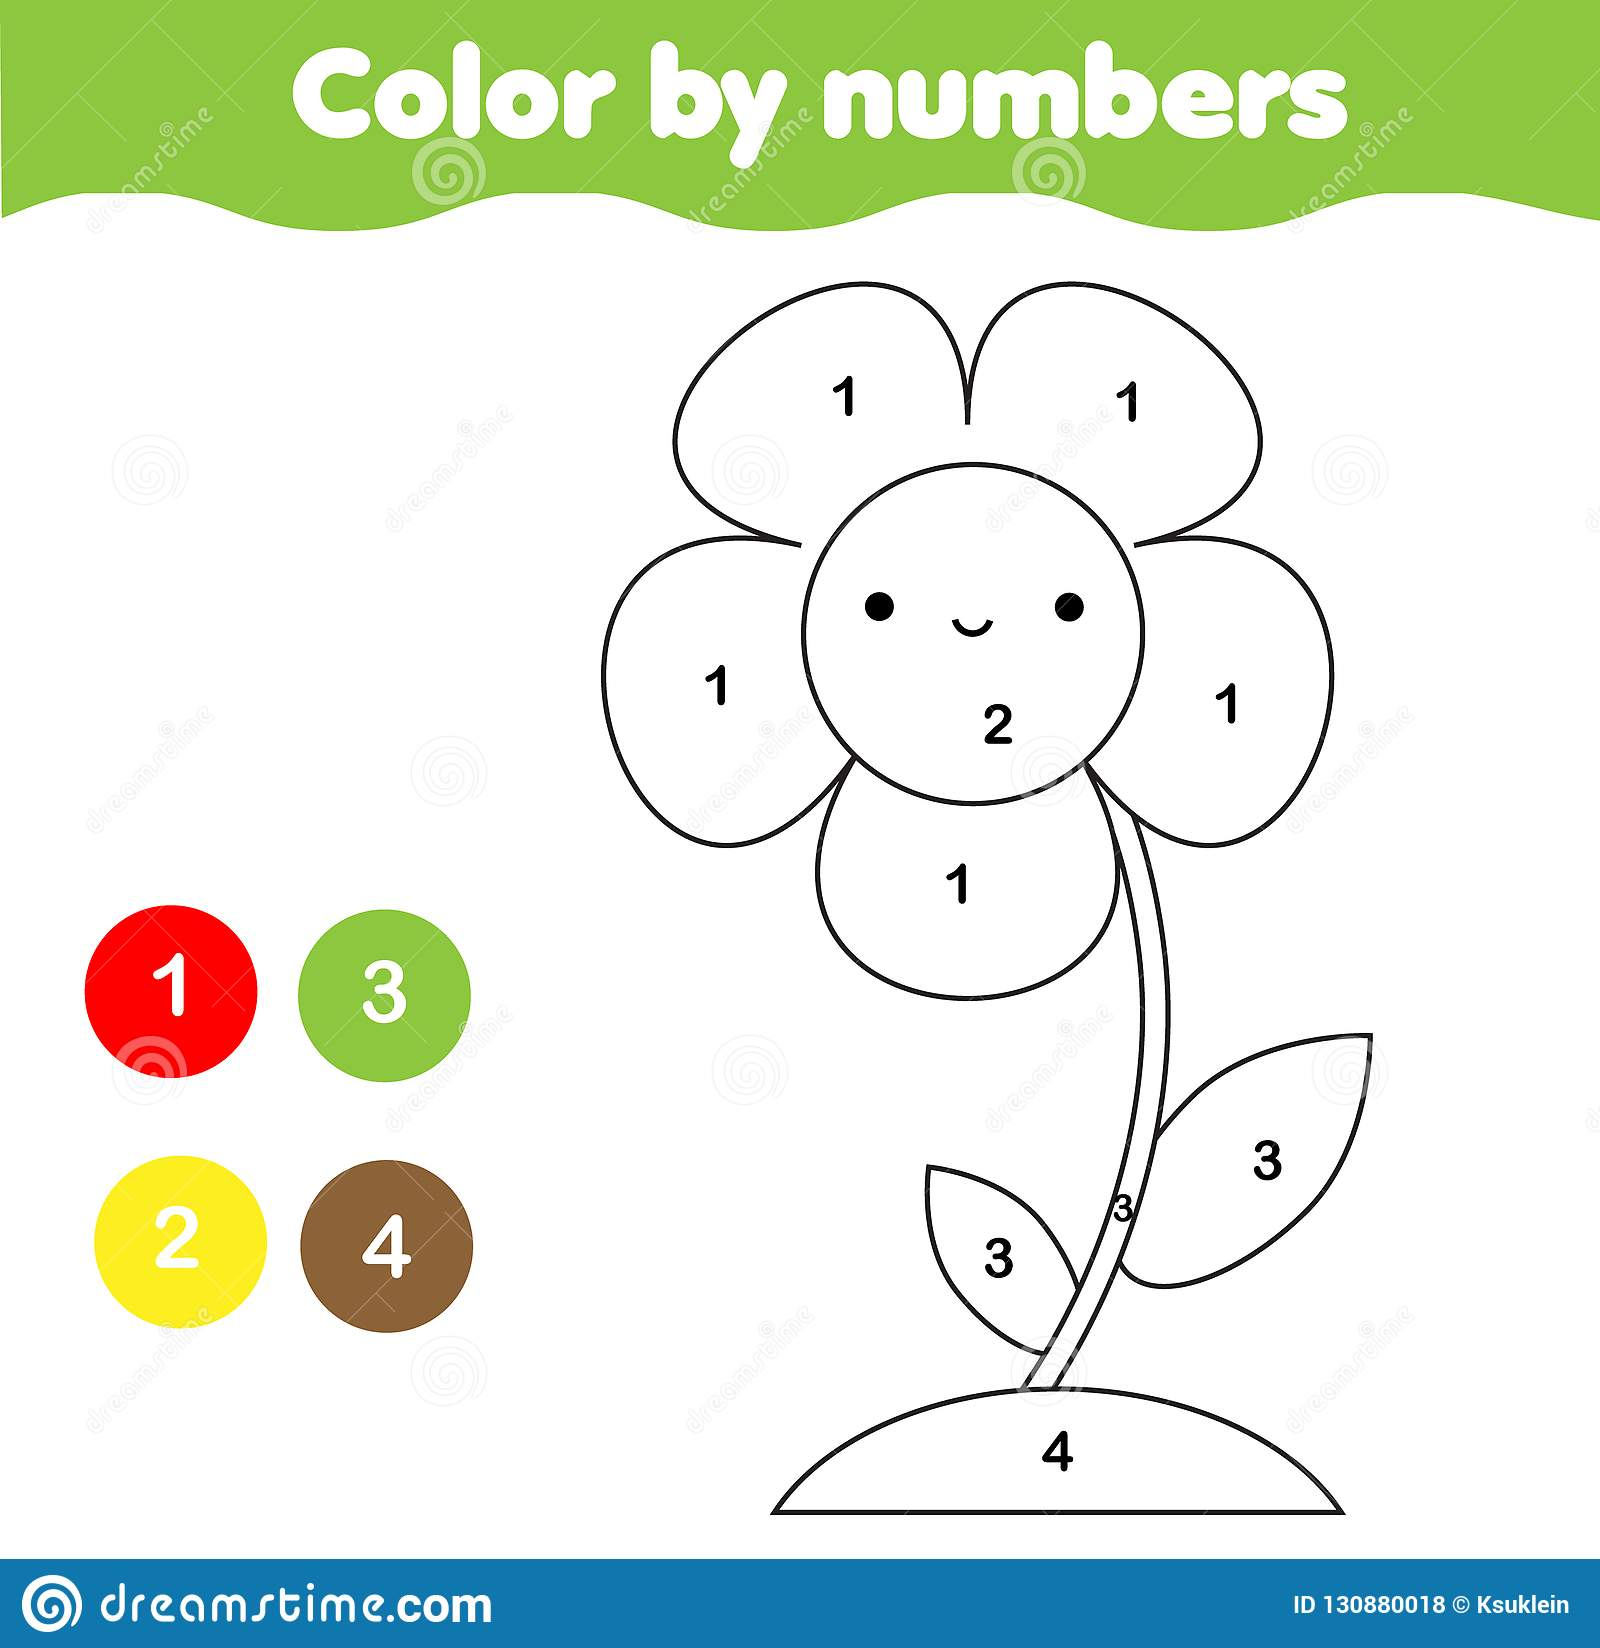 Coloring Page With Flower. Color By Numbers Printable Activity For ...